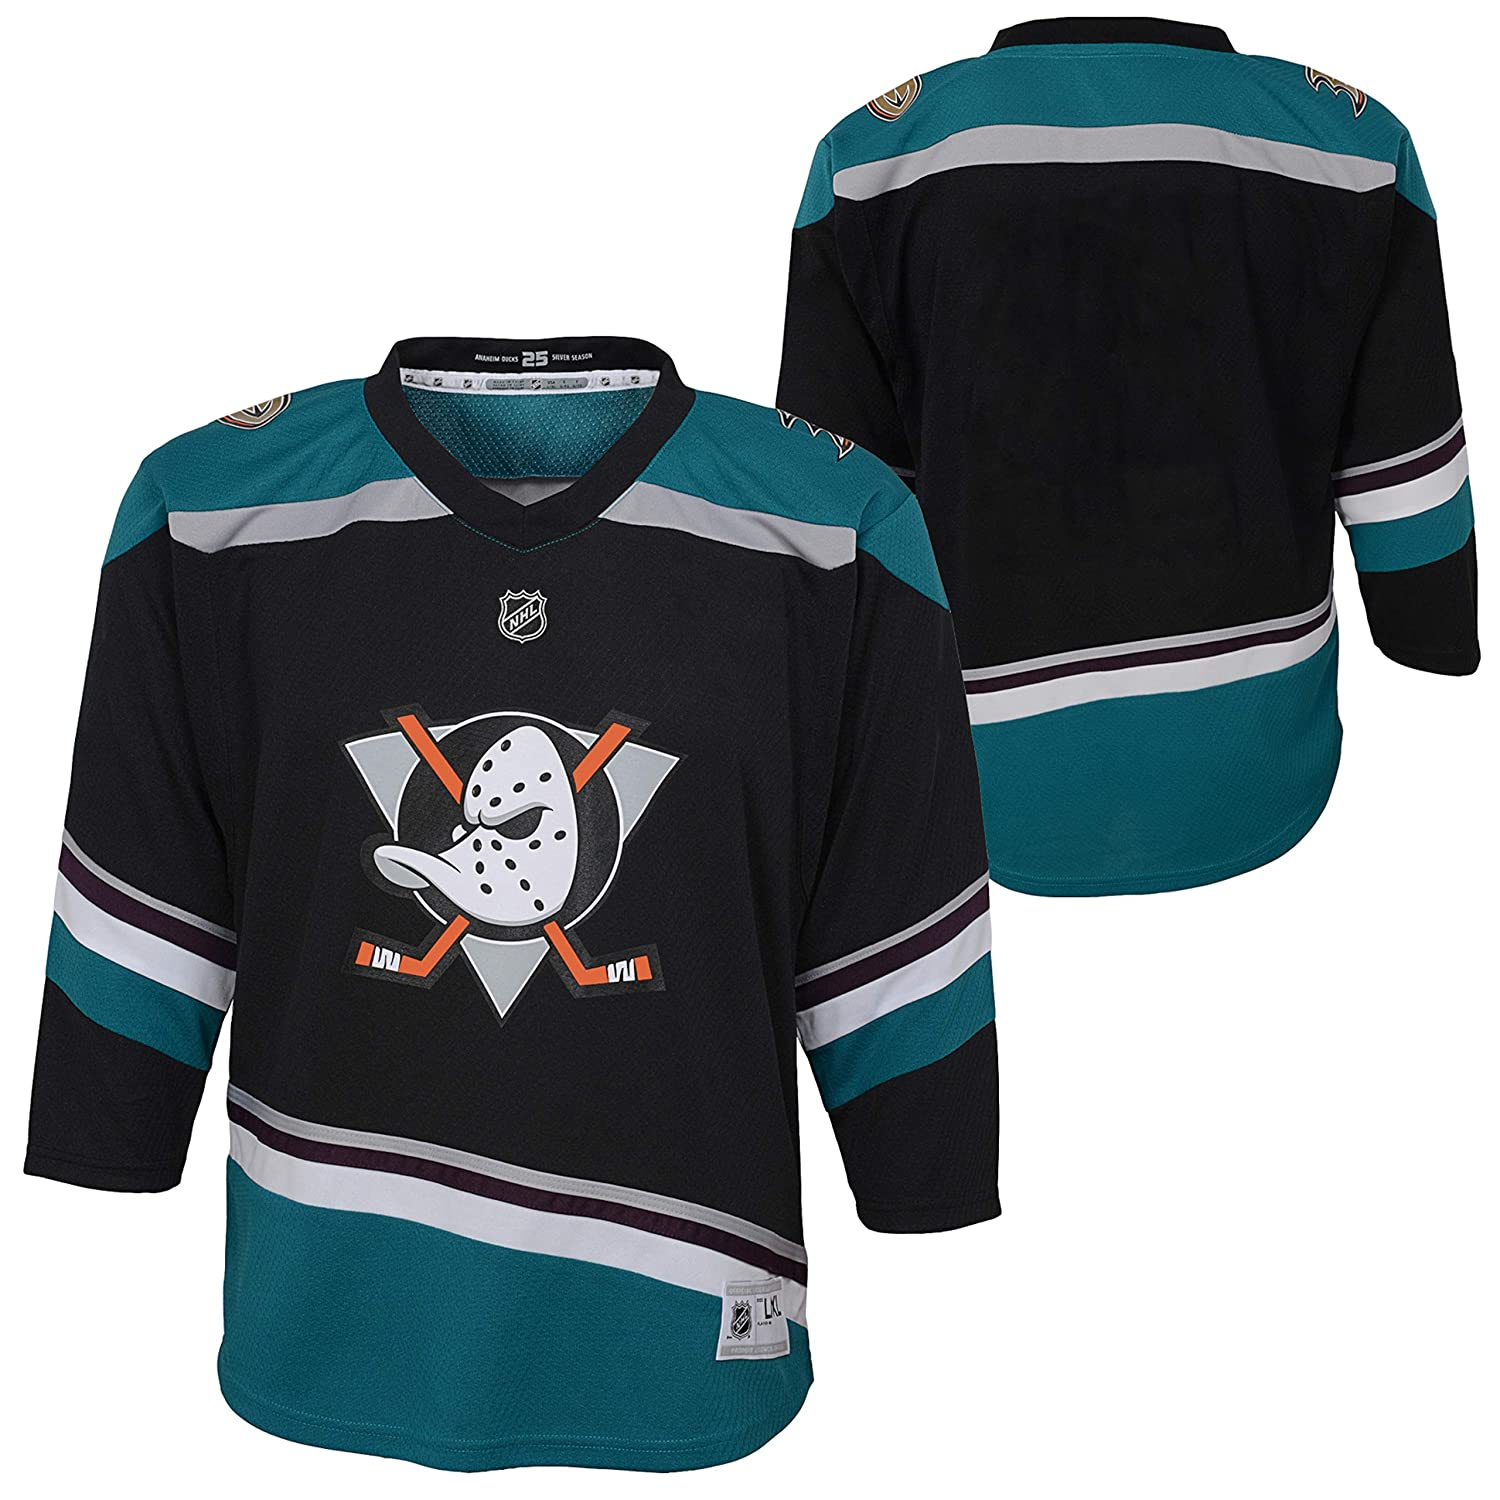 competitive price 628fe c731a 14-20 Jersey Ducks x-large Replica Teal Black com 25th Blank ...